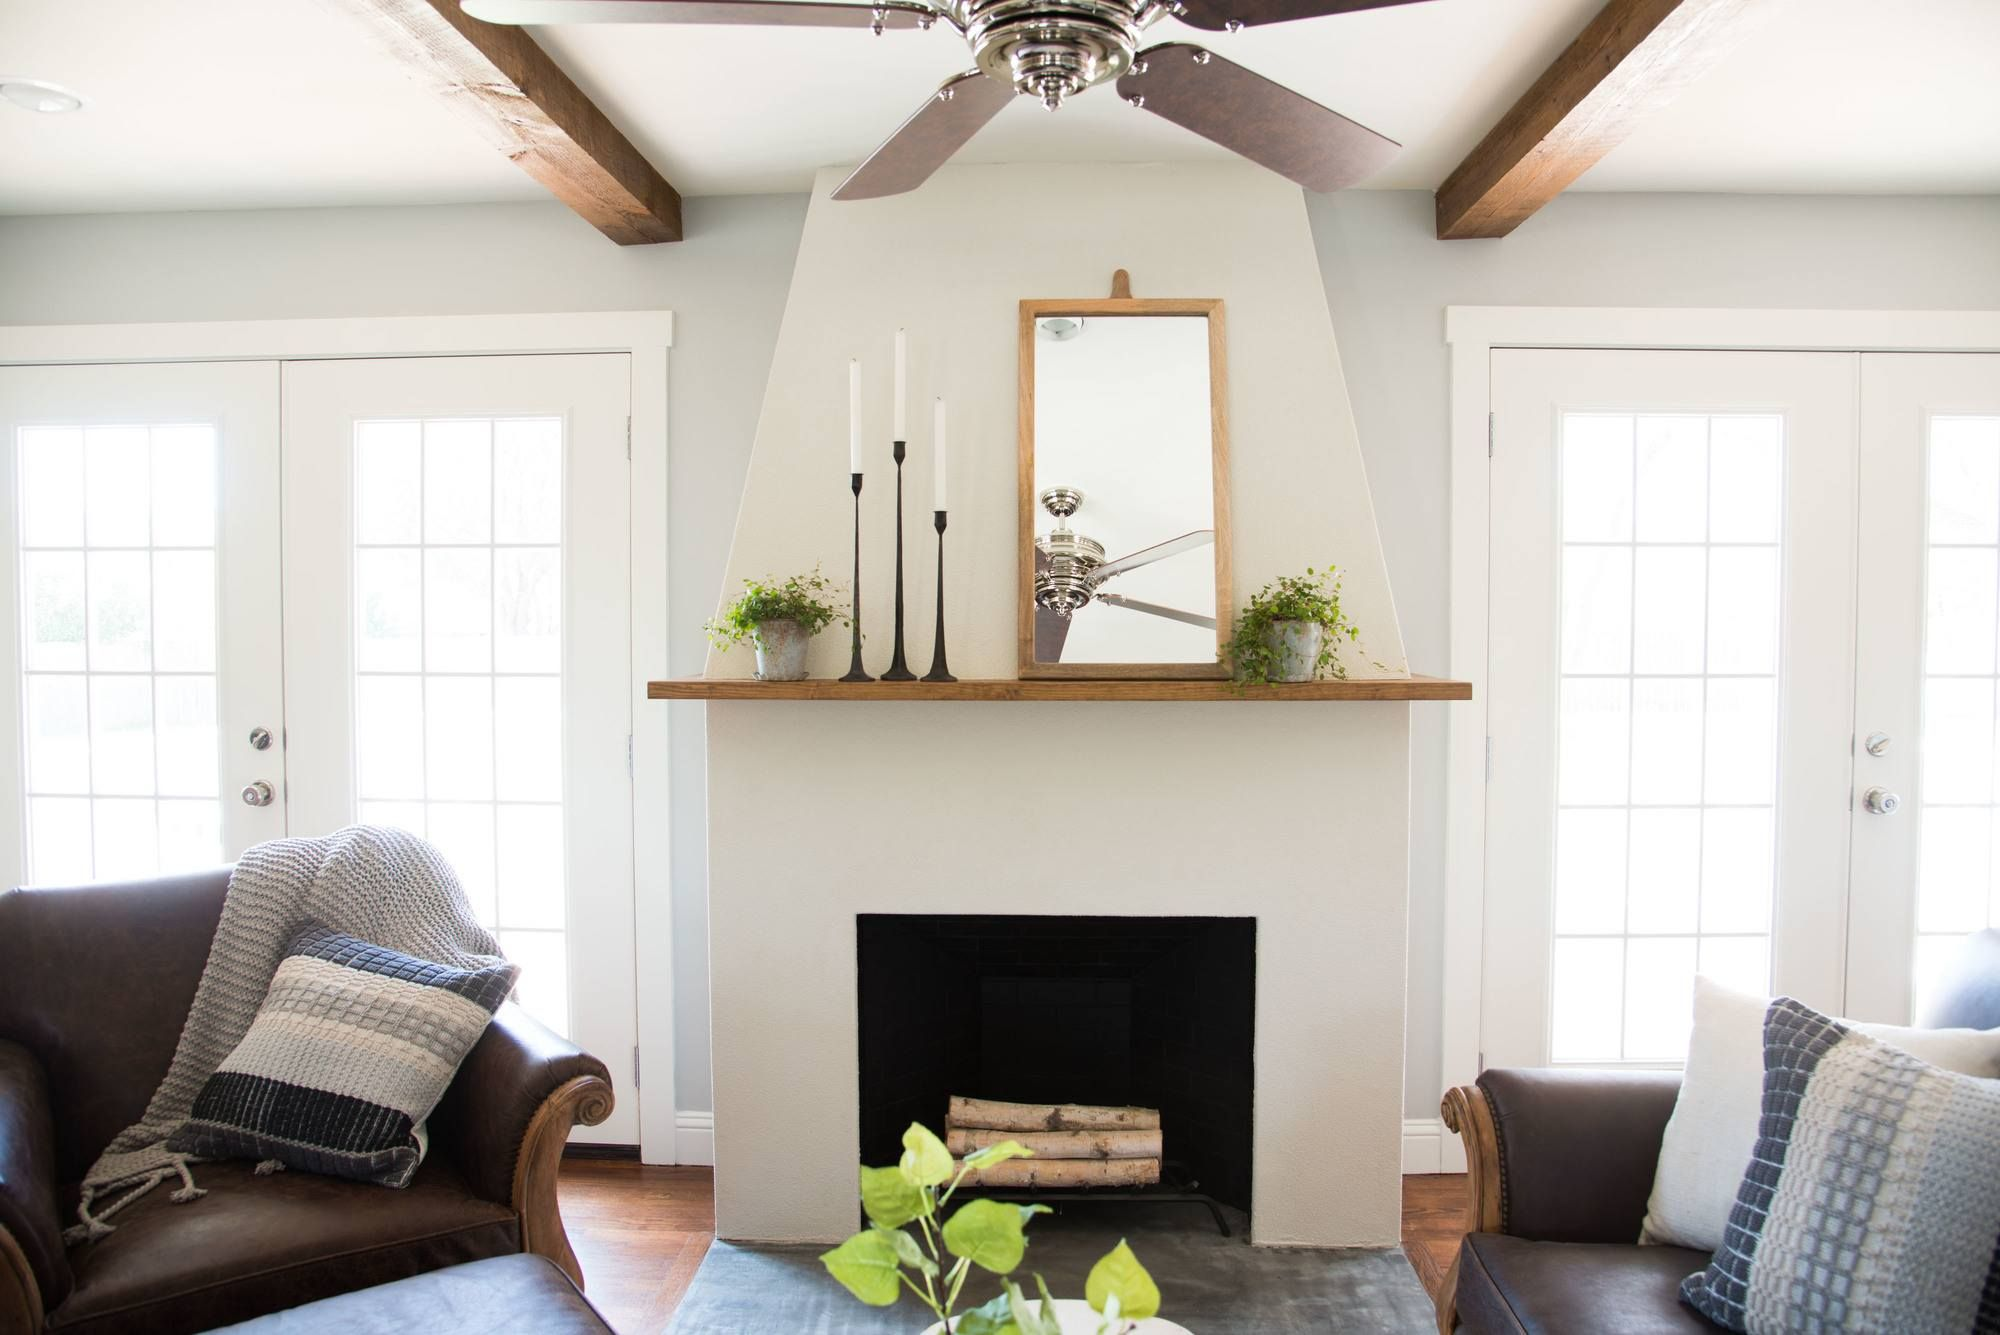 This Fireplace Is Actually Made From Stucco. It Turned Out To Be The Perfect  Focal Point And Anchor To The Entire Living Space.